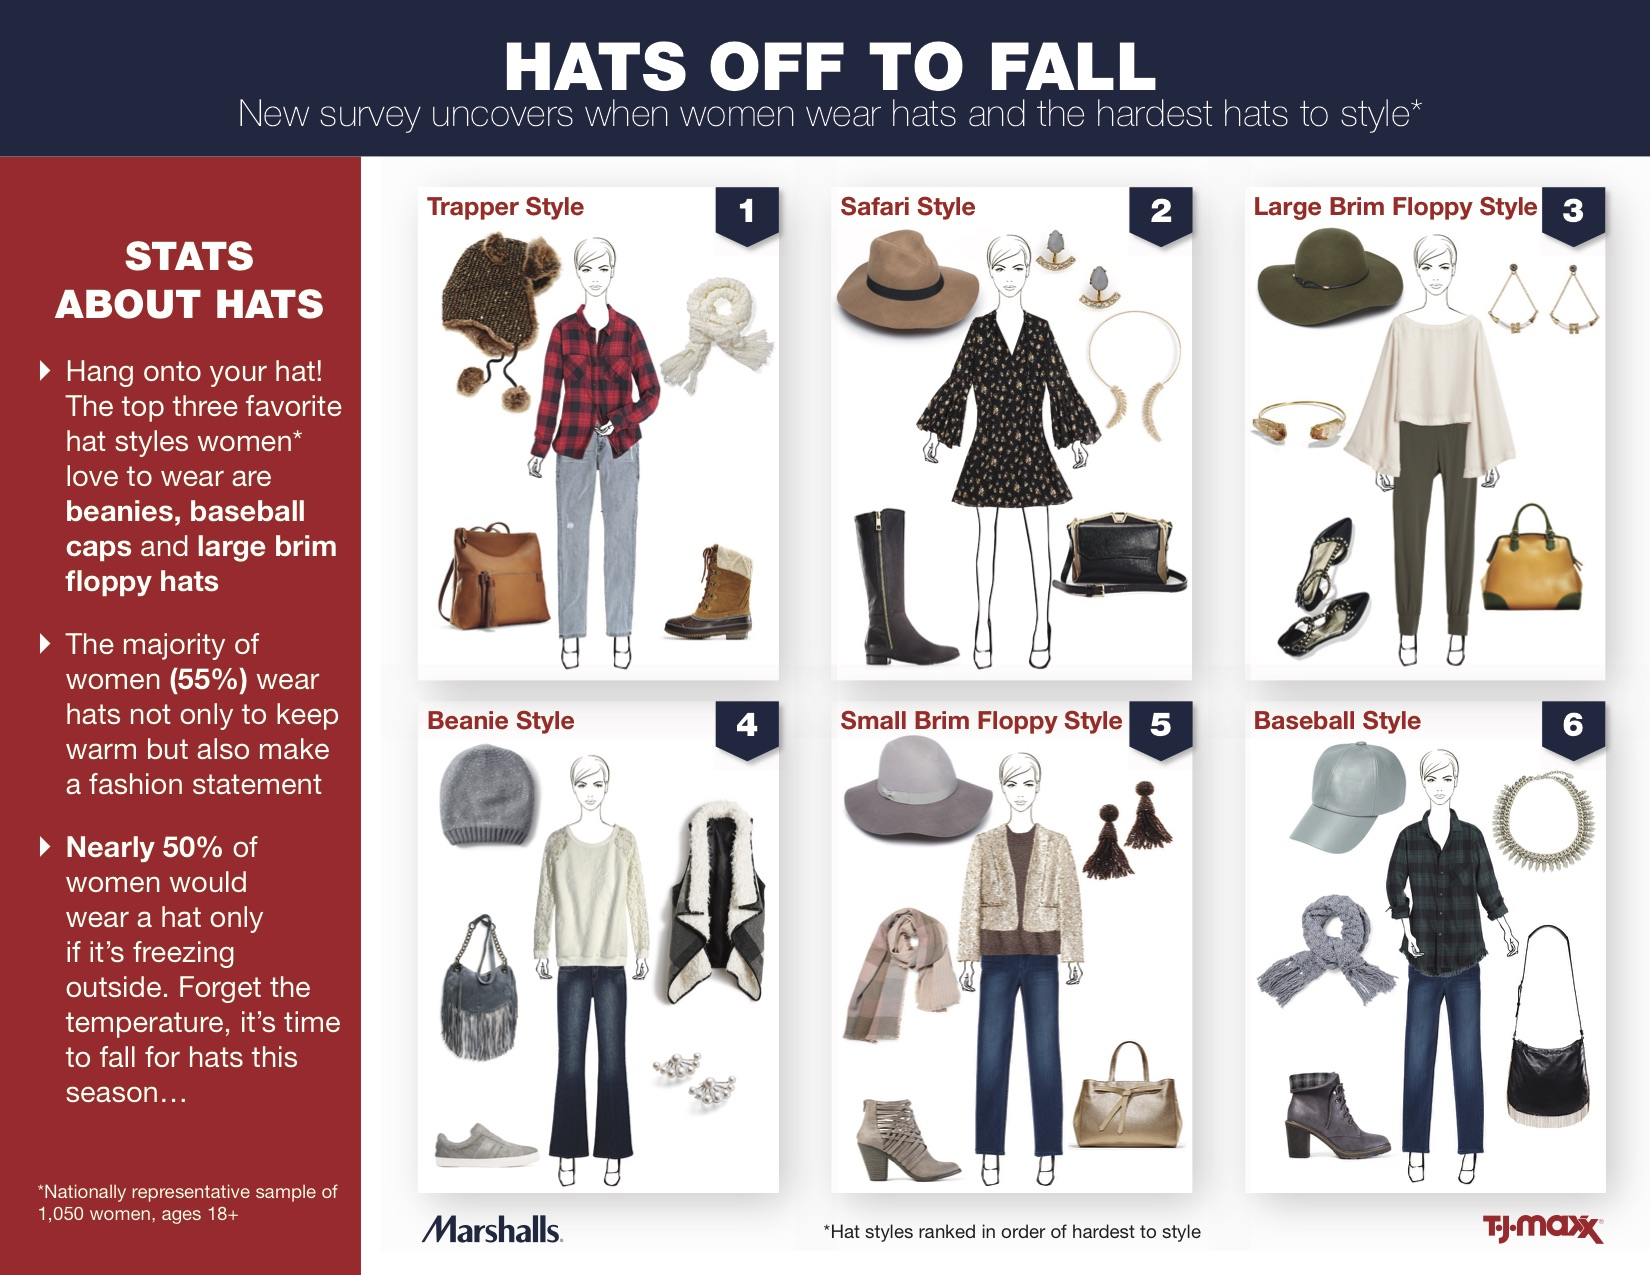 #TJMaxx #Marshalls #NationalHatMonth #fashion #beauty #ad